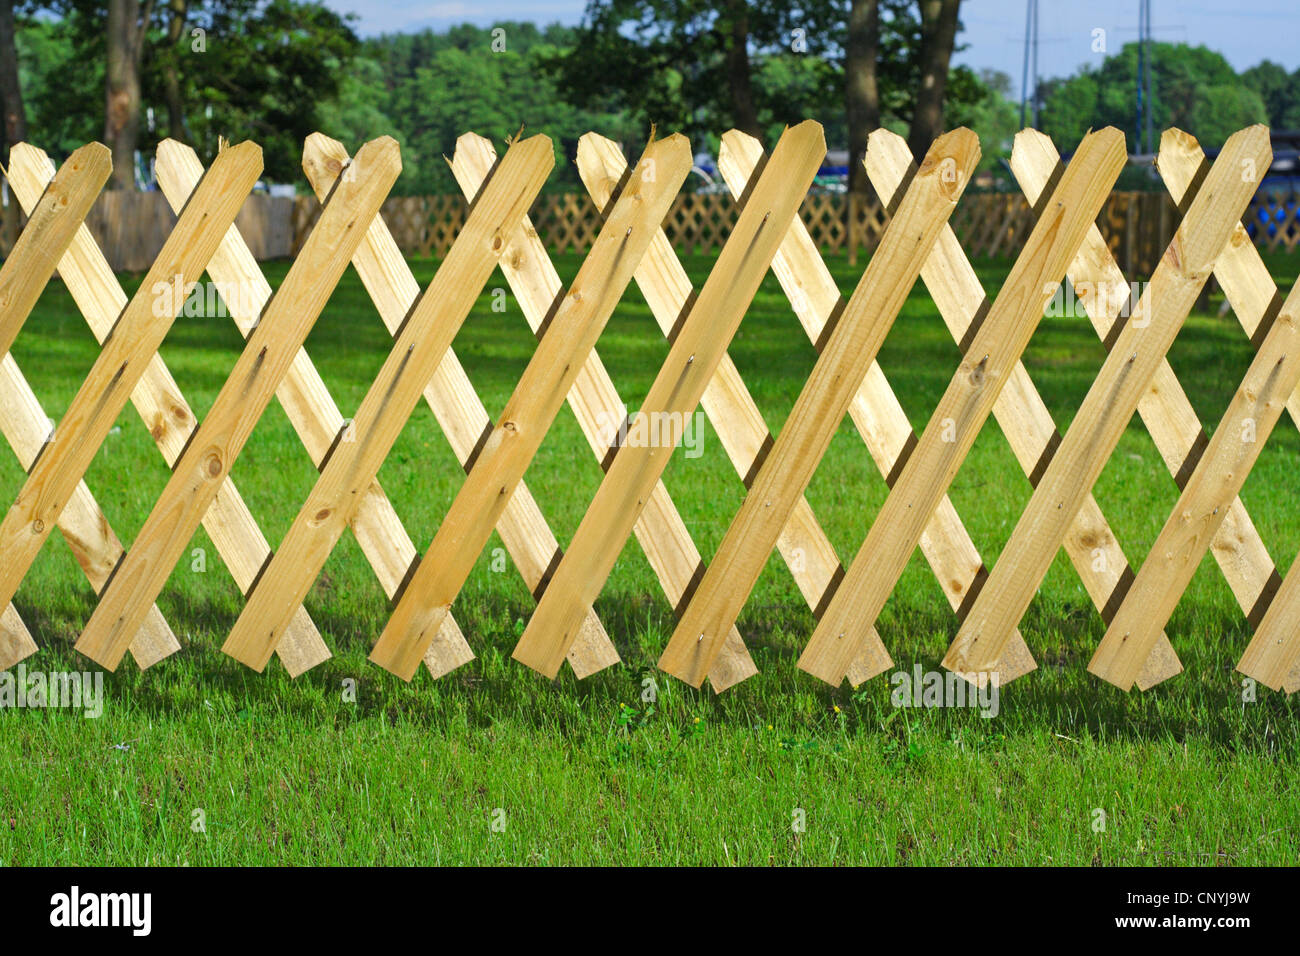 Low Wooden Fence Staxel: The Small Wooden Fence Fencing Off Places On The Camping